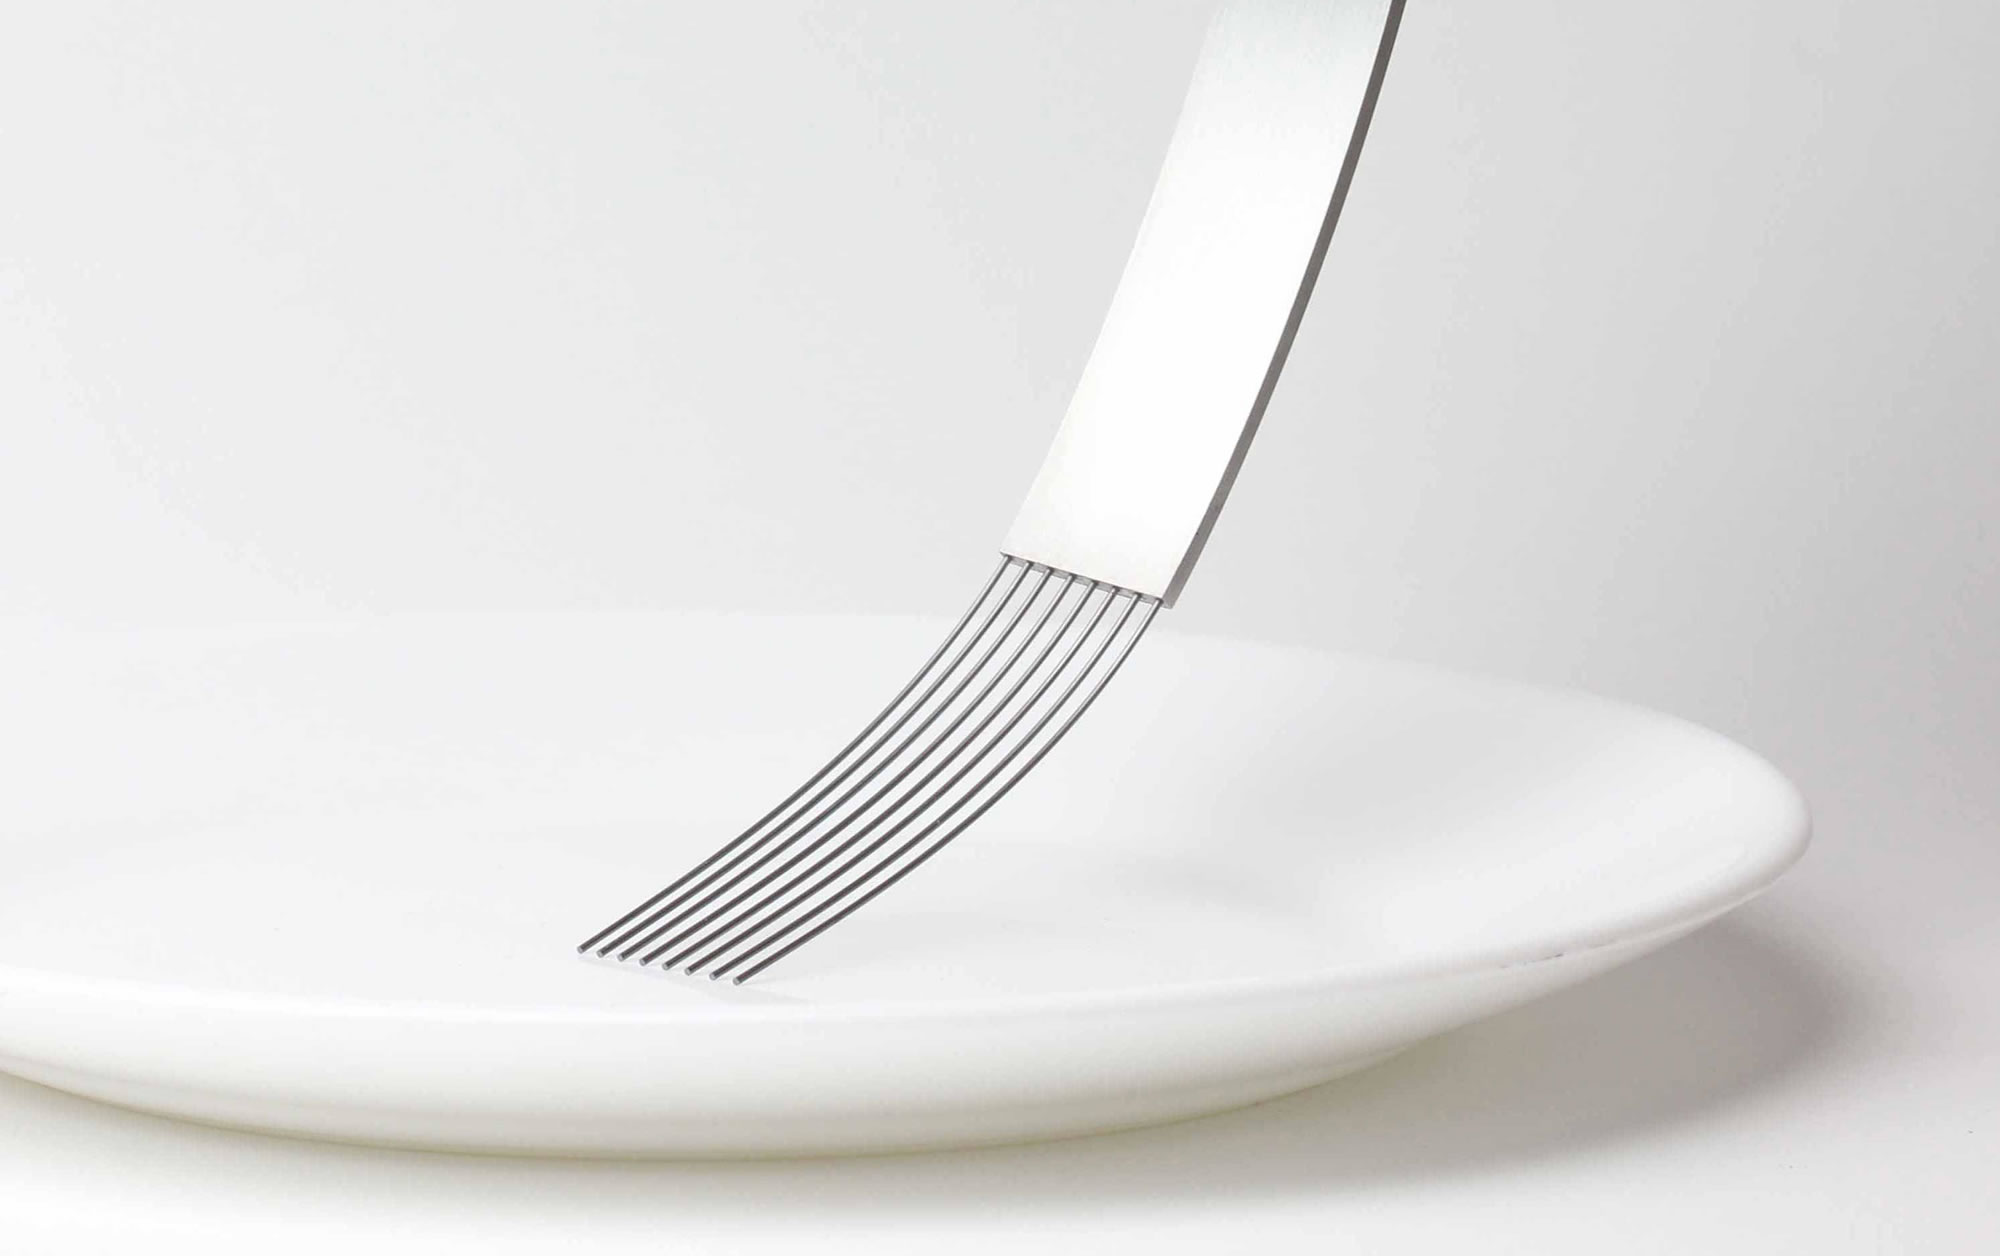 Flexible Fork and Other Ultra-Modern Tableware by James Stoklund